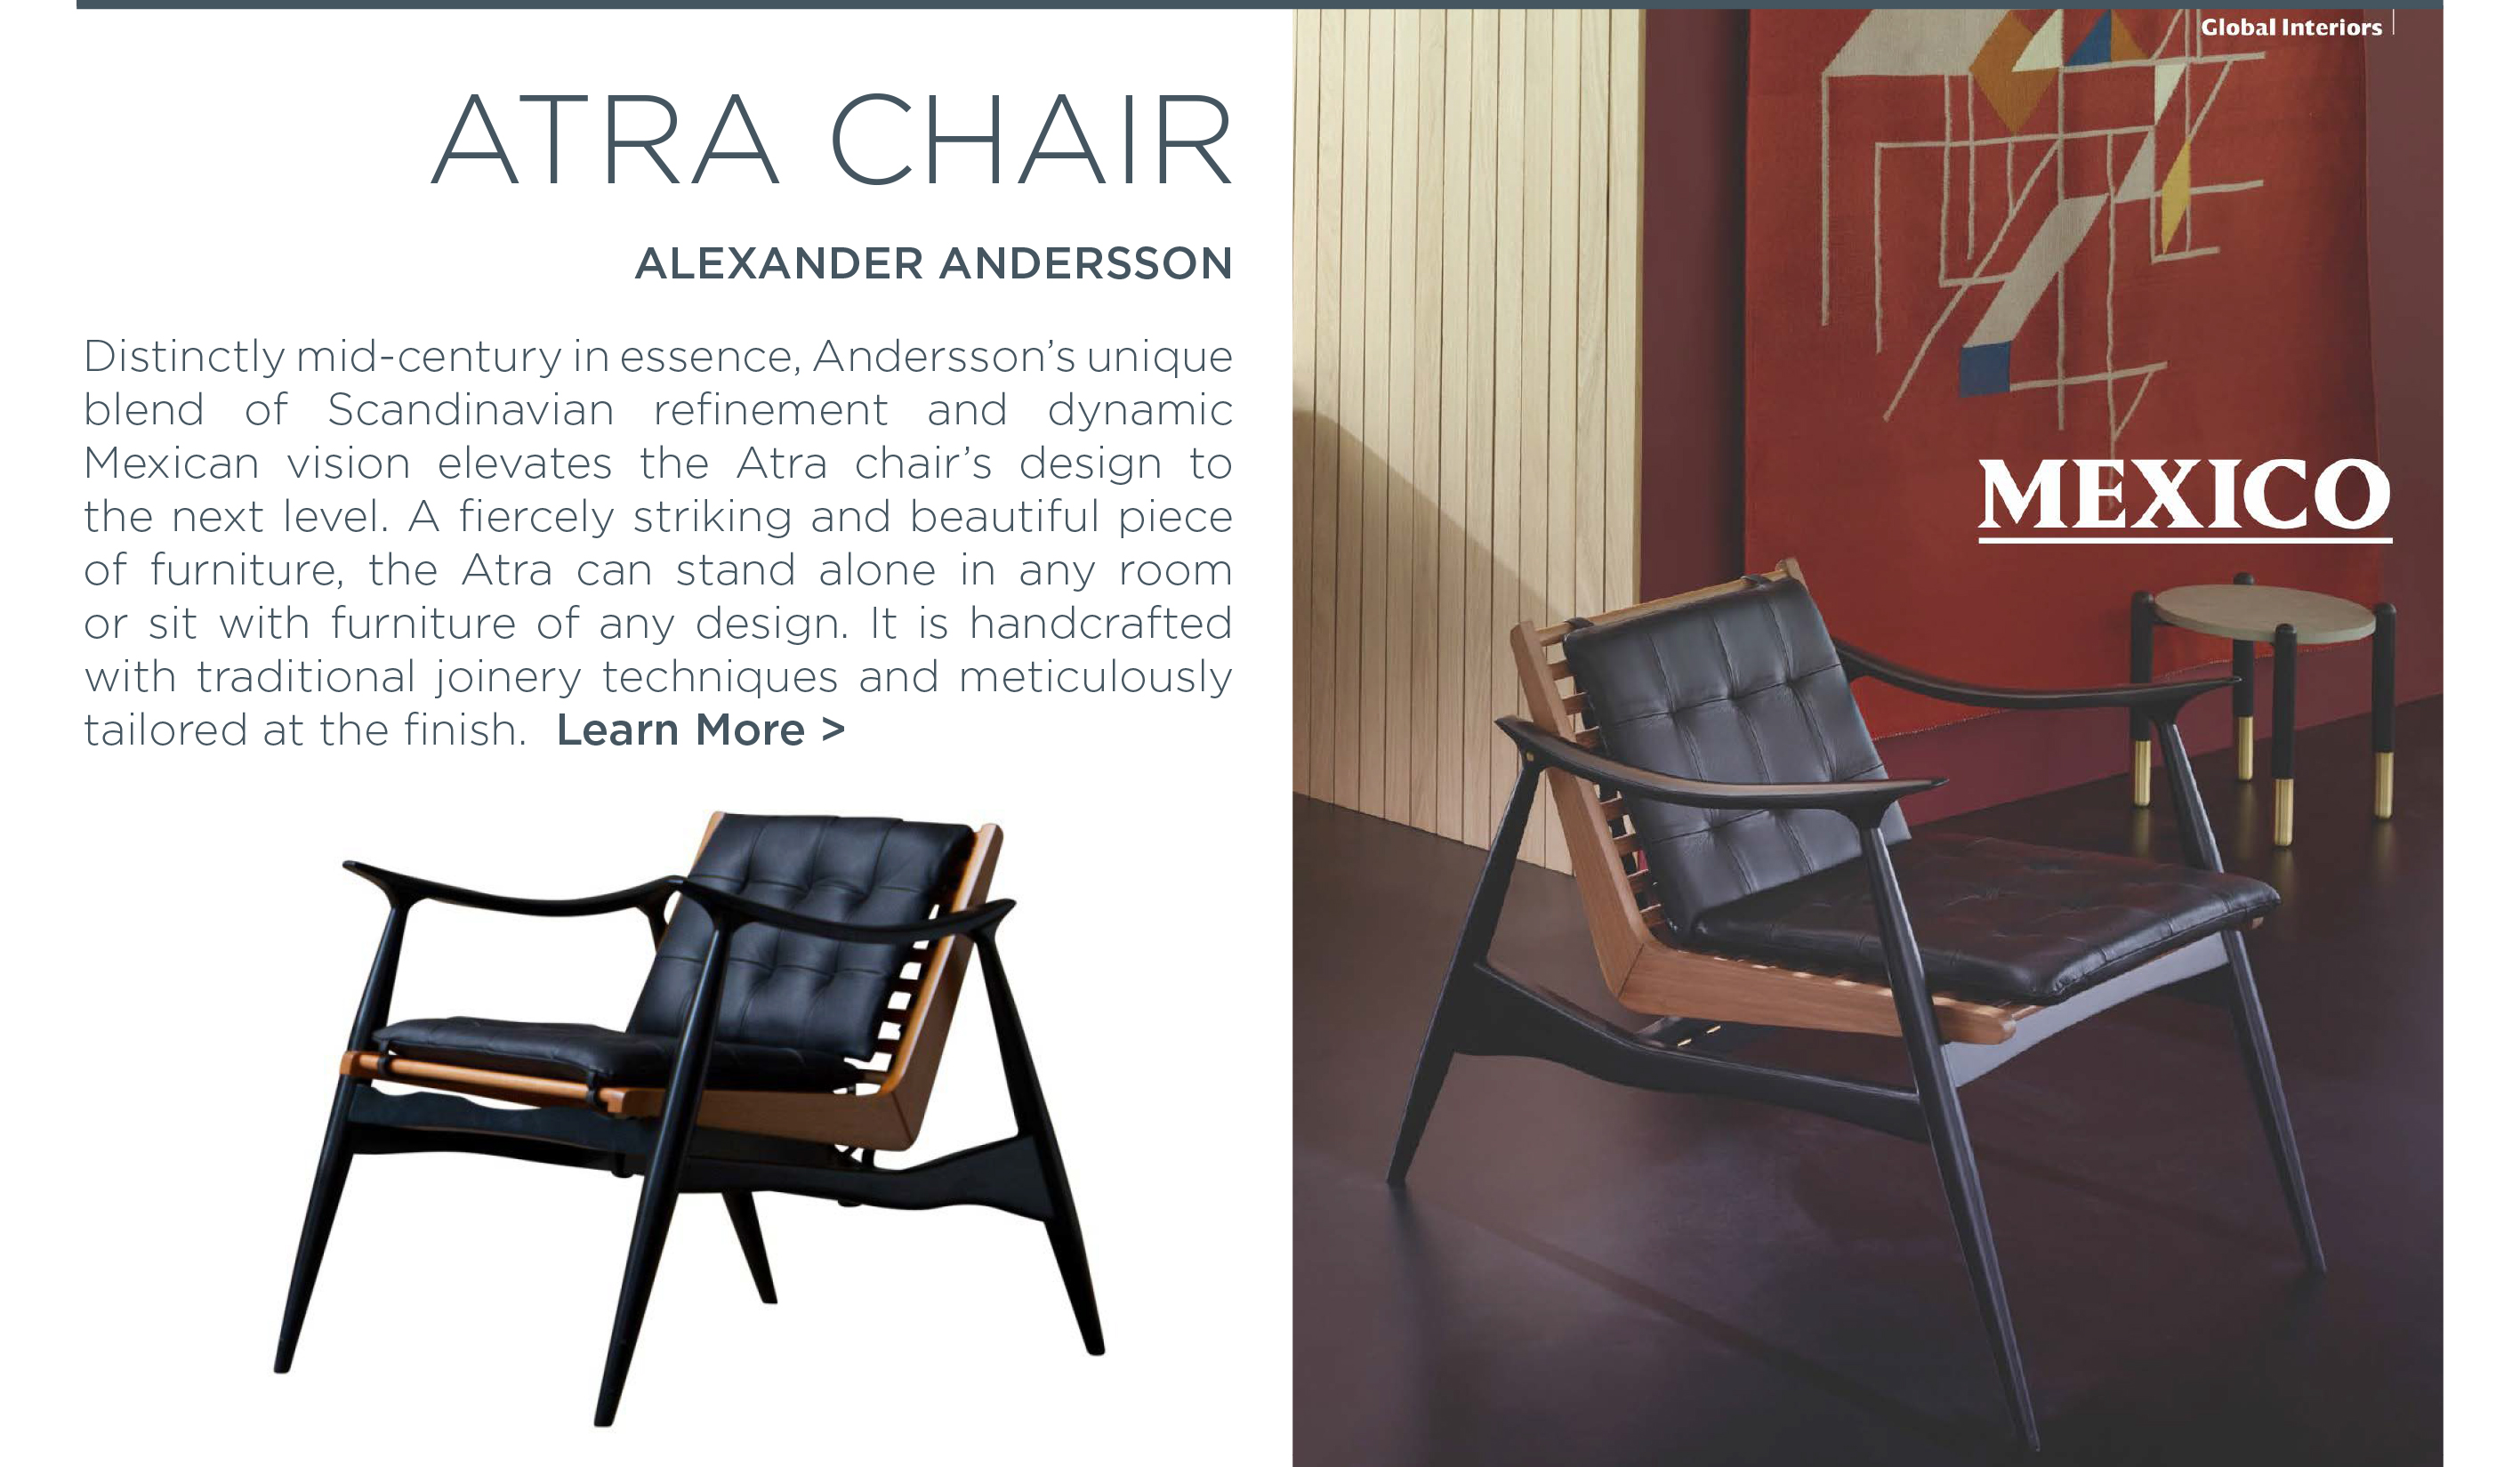 Atra chair alexander andersson luteca scandinavian mexican mid century designer furniture suite new york